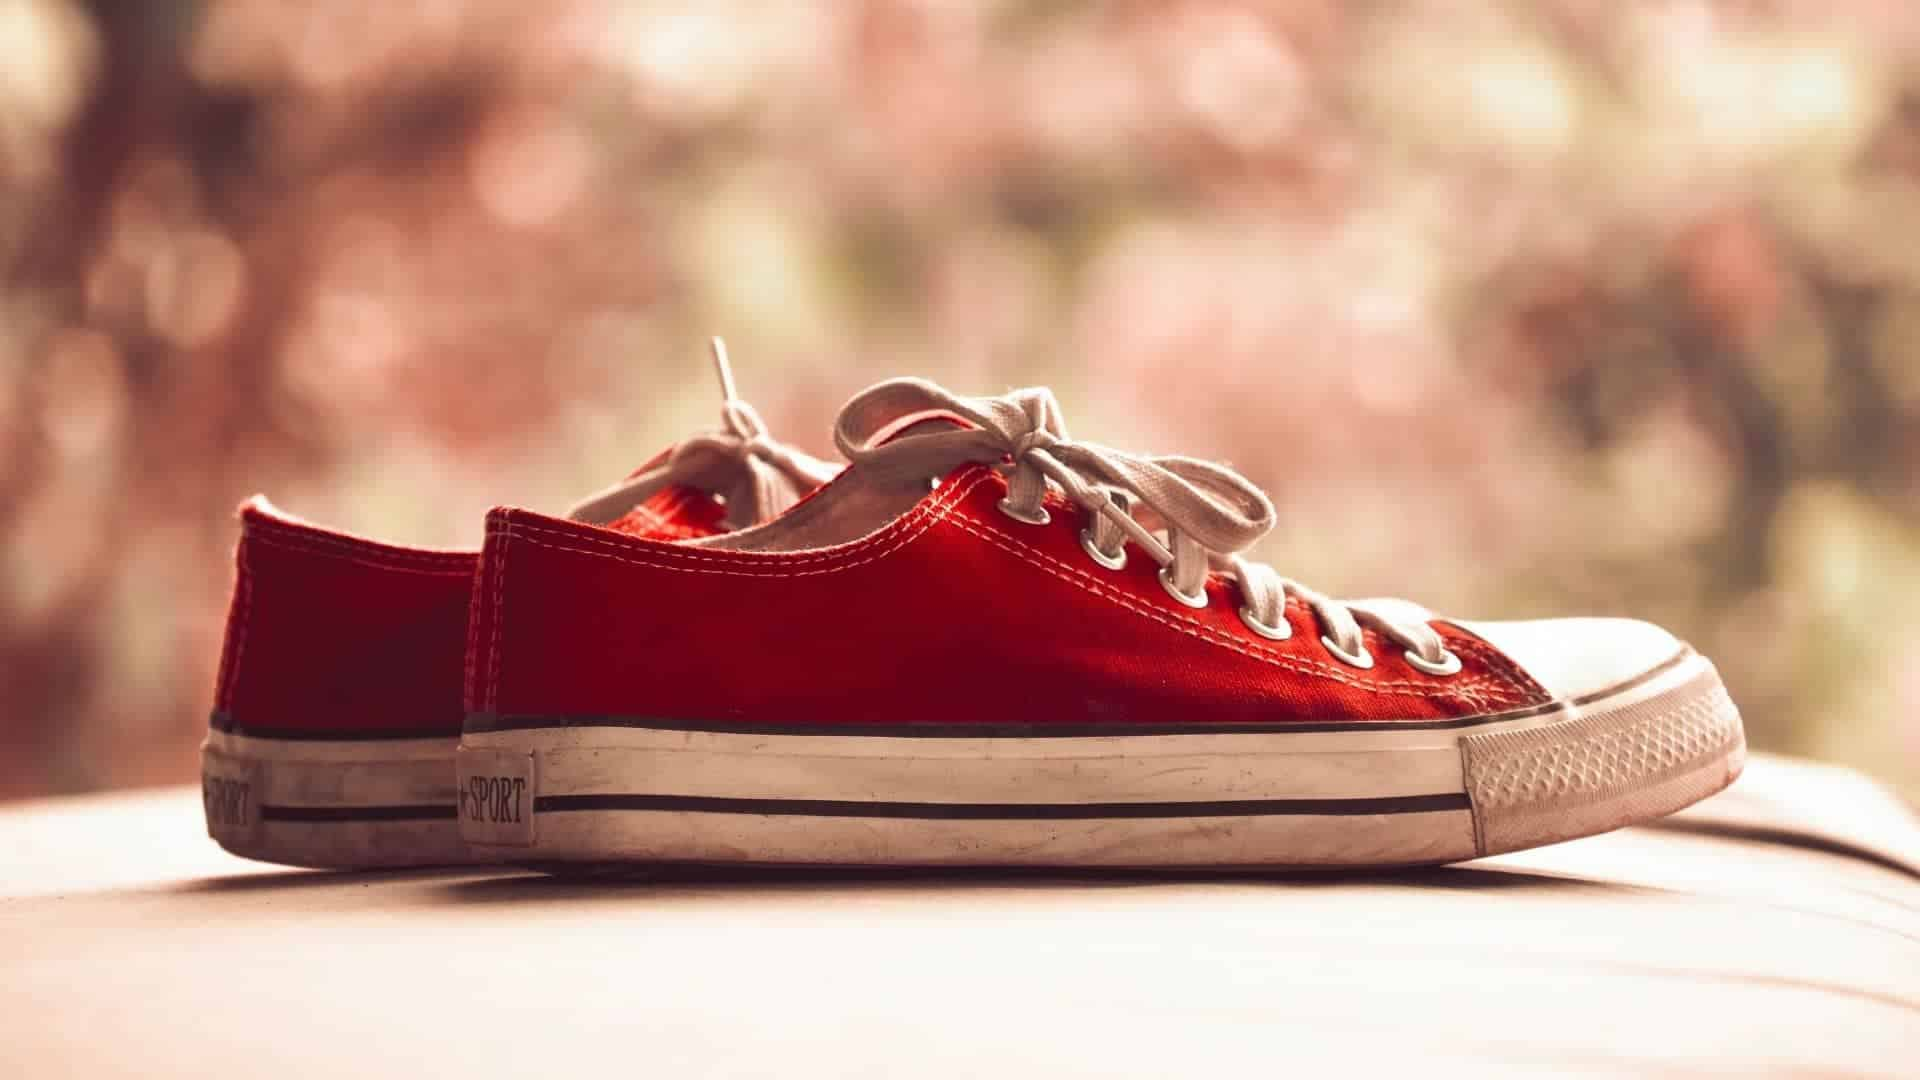 How To Prevent Acrylic Paint From Cracking On Shoes